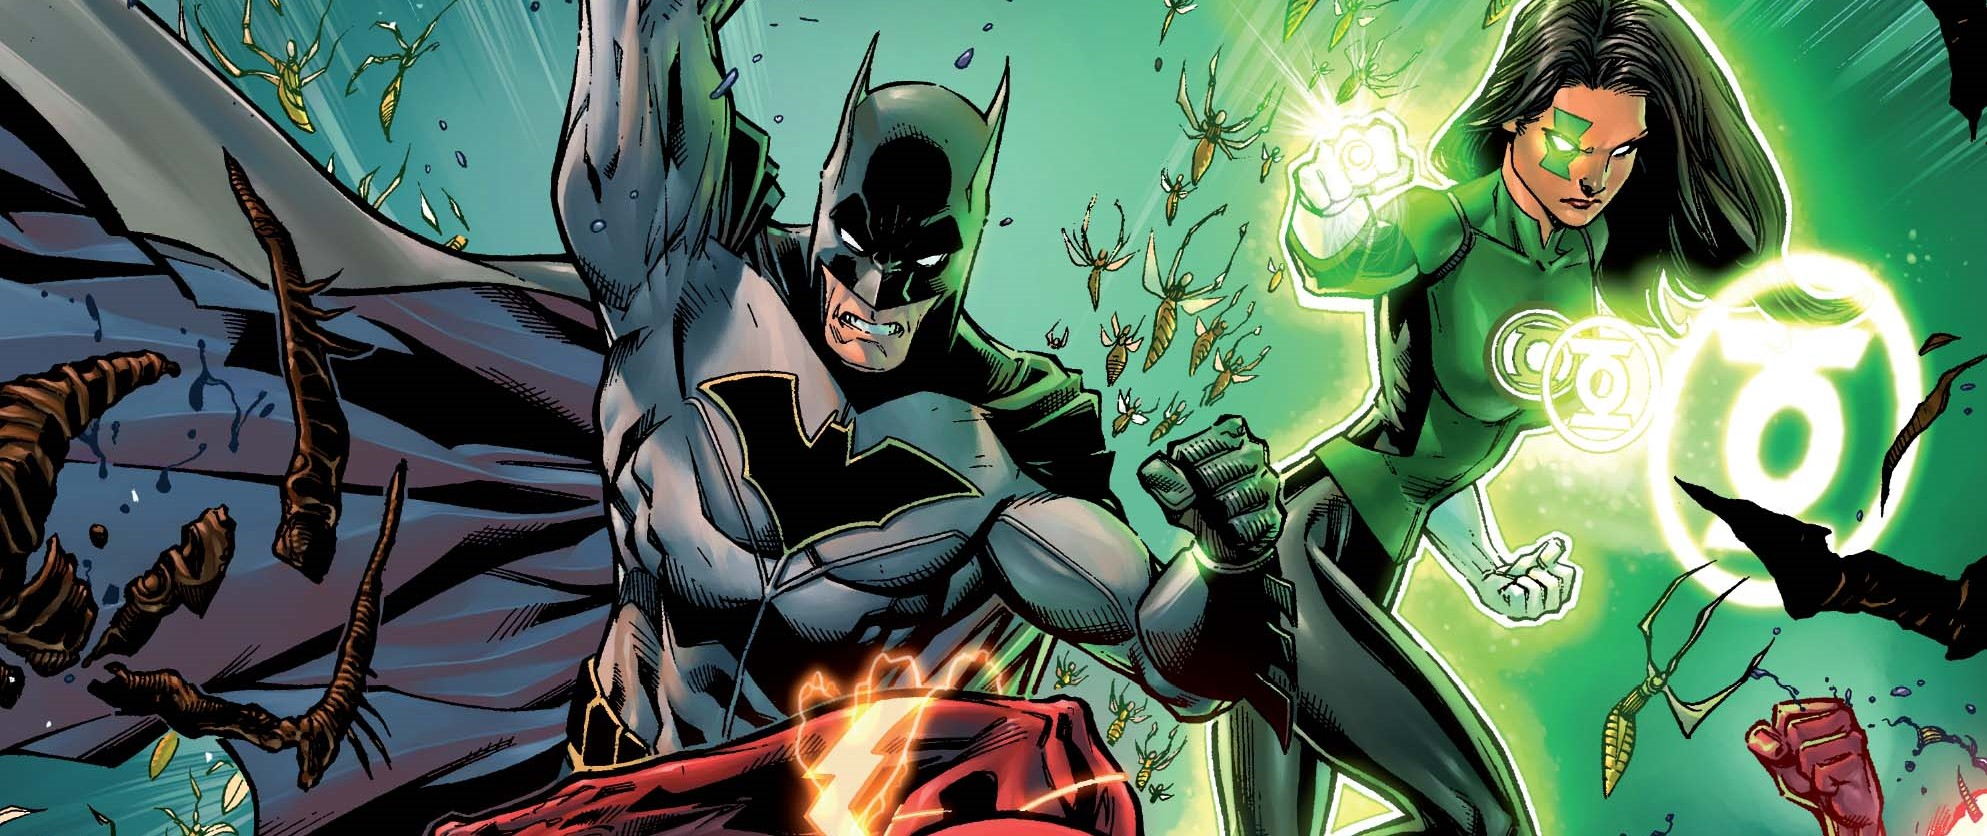 Justice League #2 Review